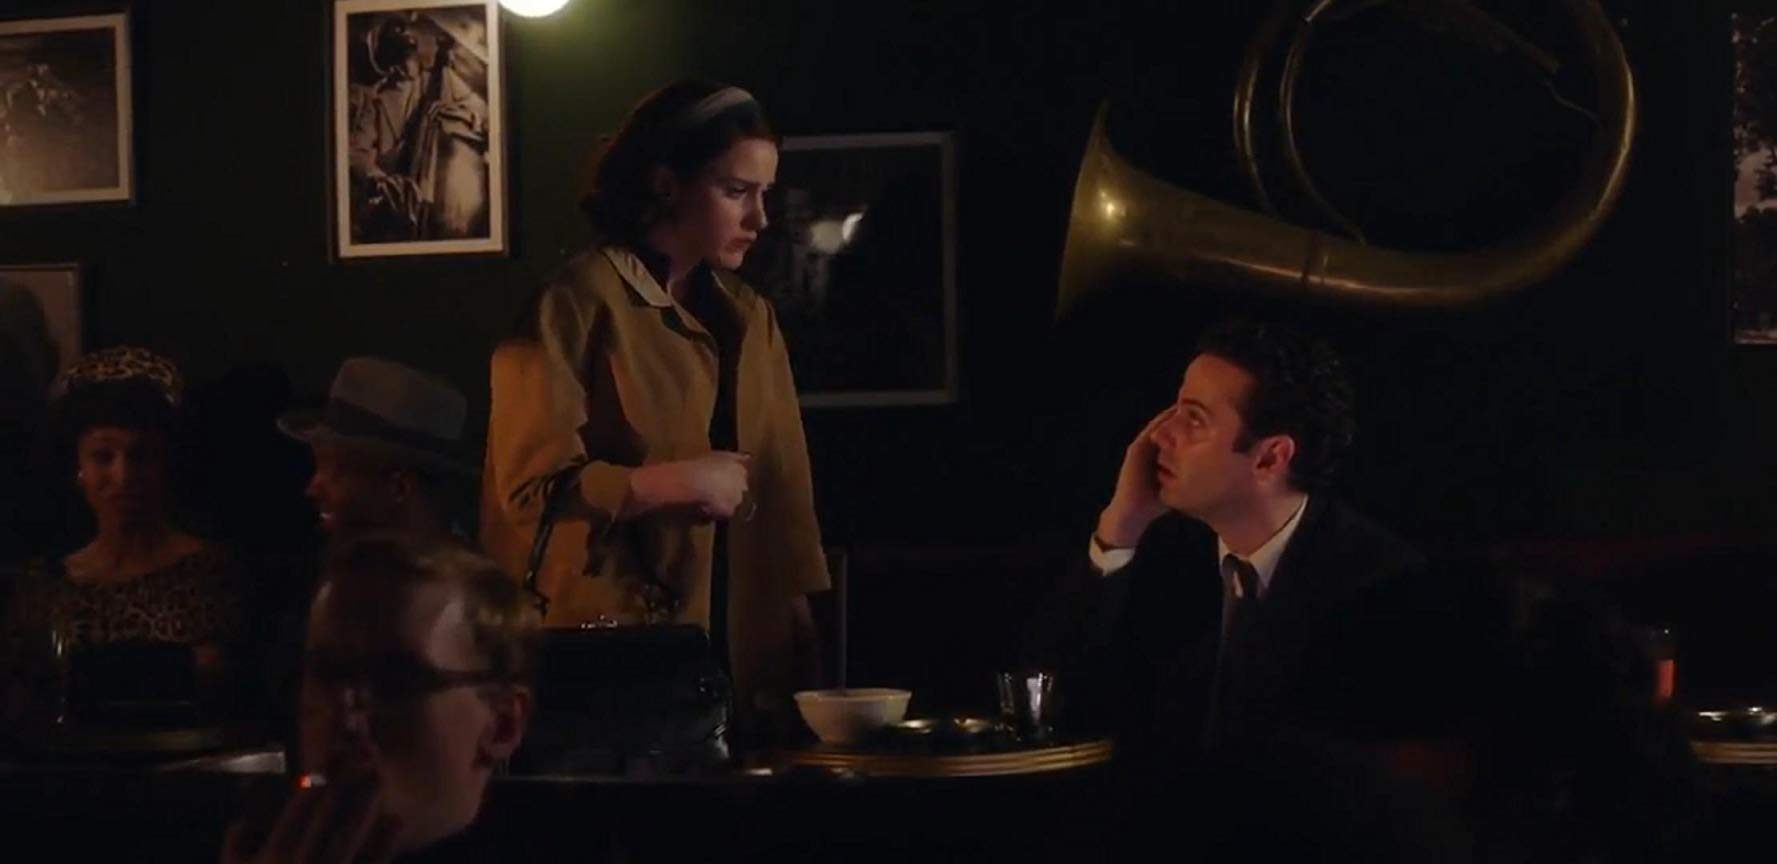 NYC Film Locations Guide to The Marvelous Mrs. Maisel Lenny Bruce Village Vanguard